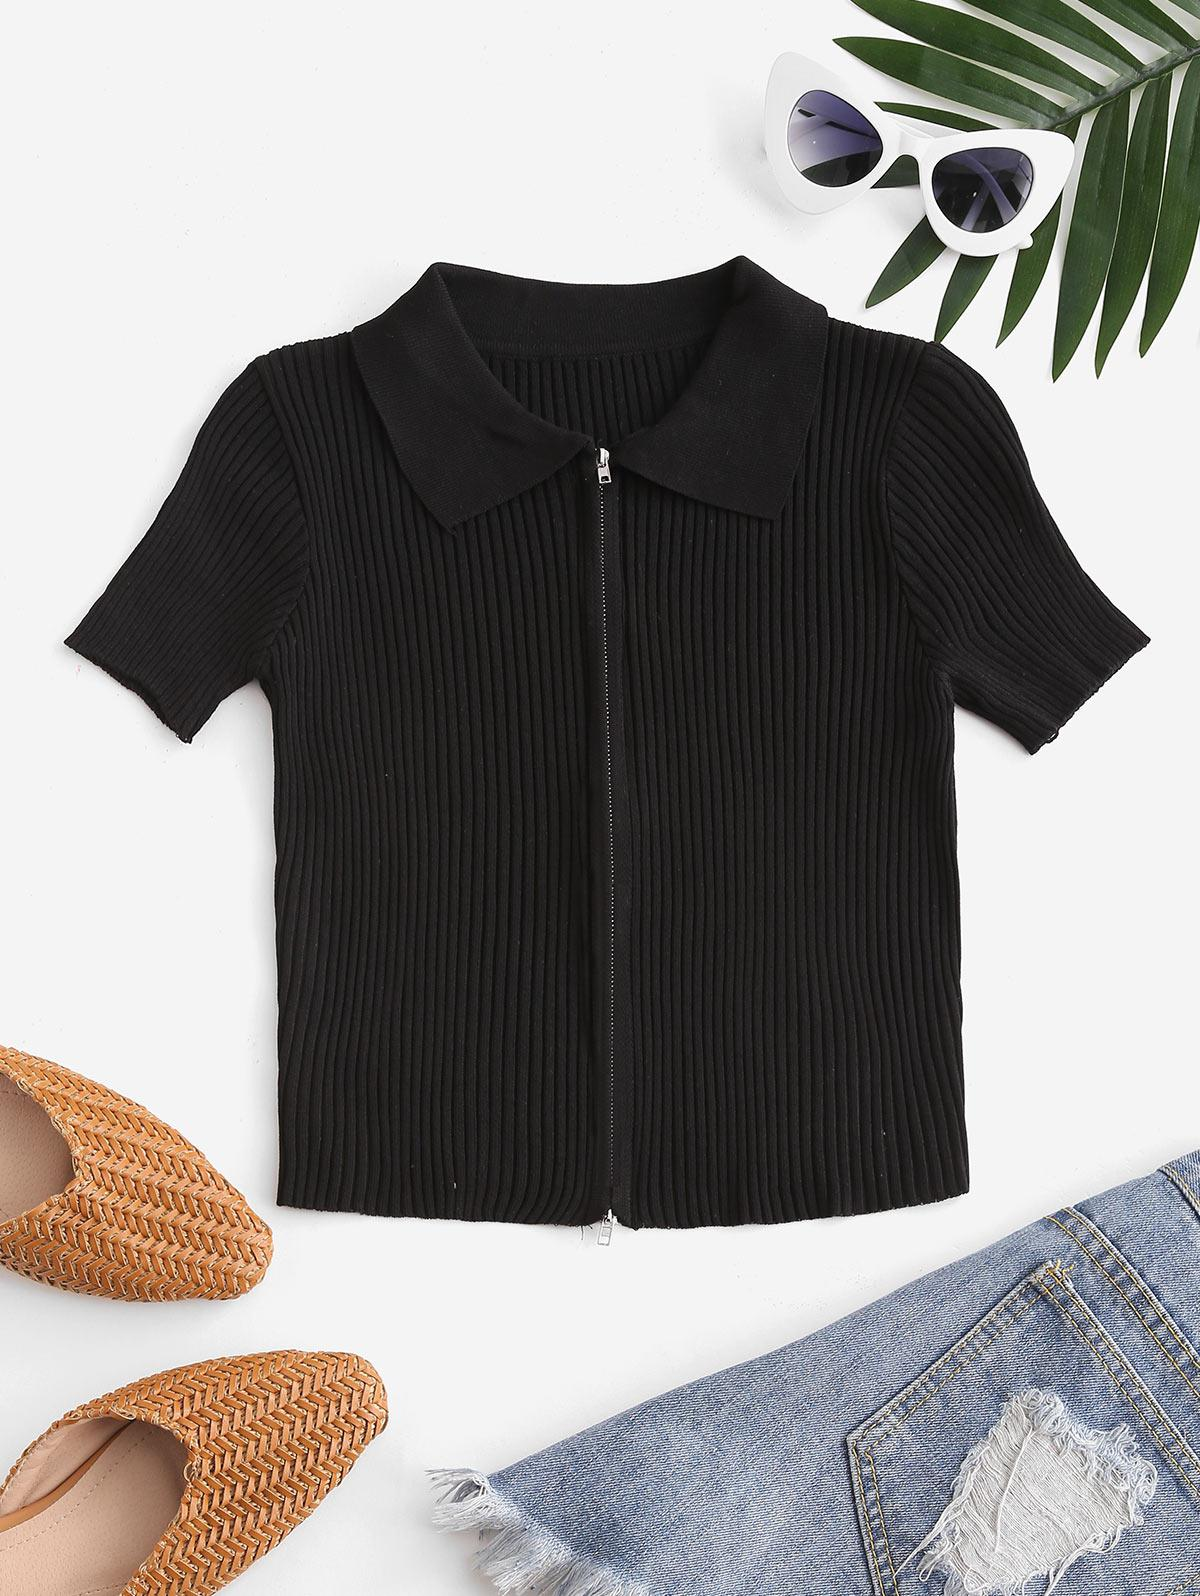 Double Way Zip Ribbed Short Sleeve T-shirt